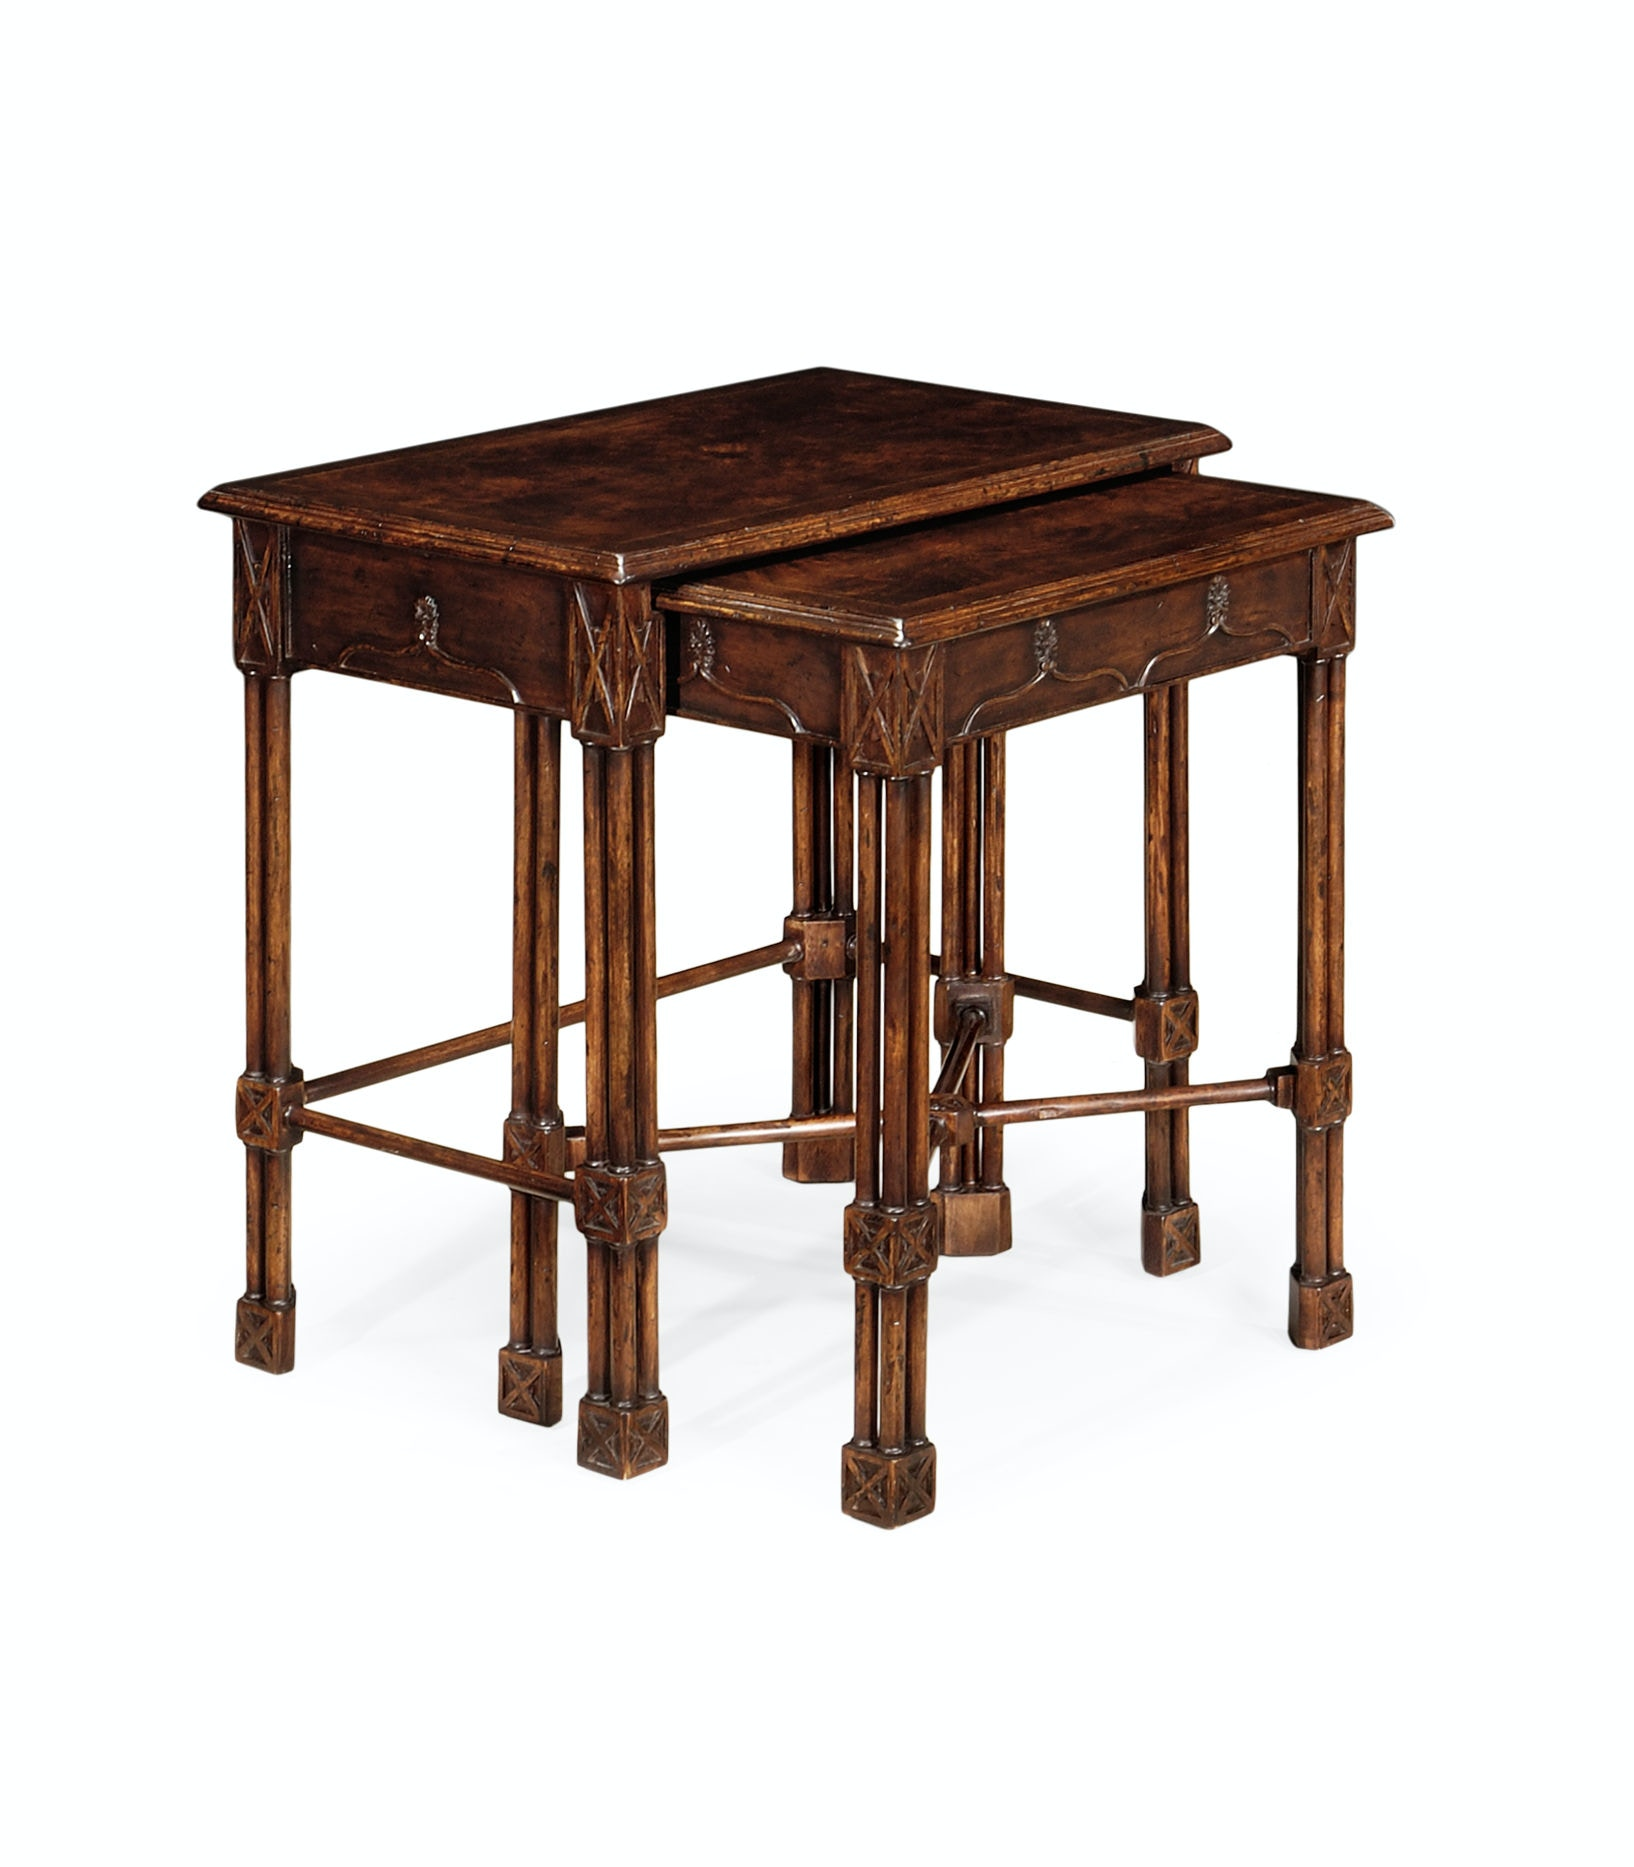 Jonathan Charles Living Room Chippendale Gothic Style Nesting Tables  493484 DCW At Louisiana Furniture Gallery